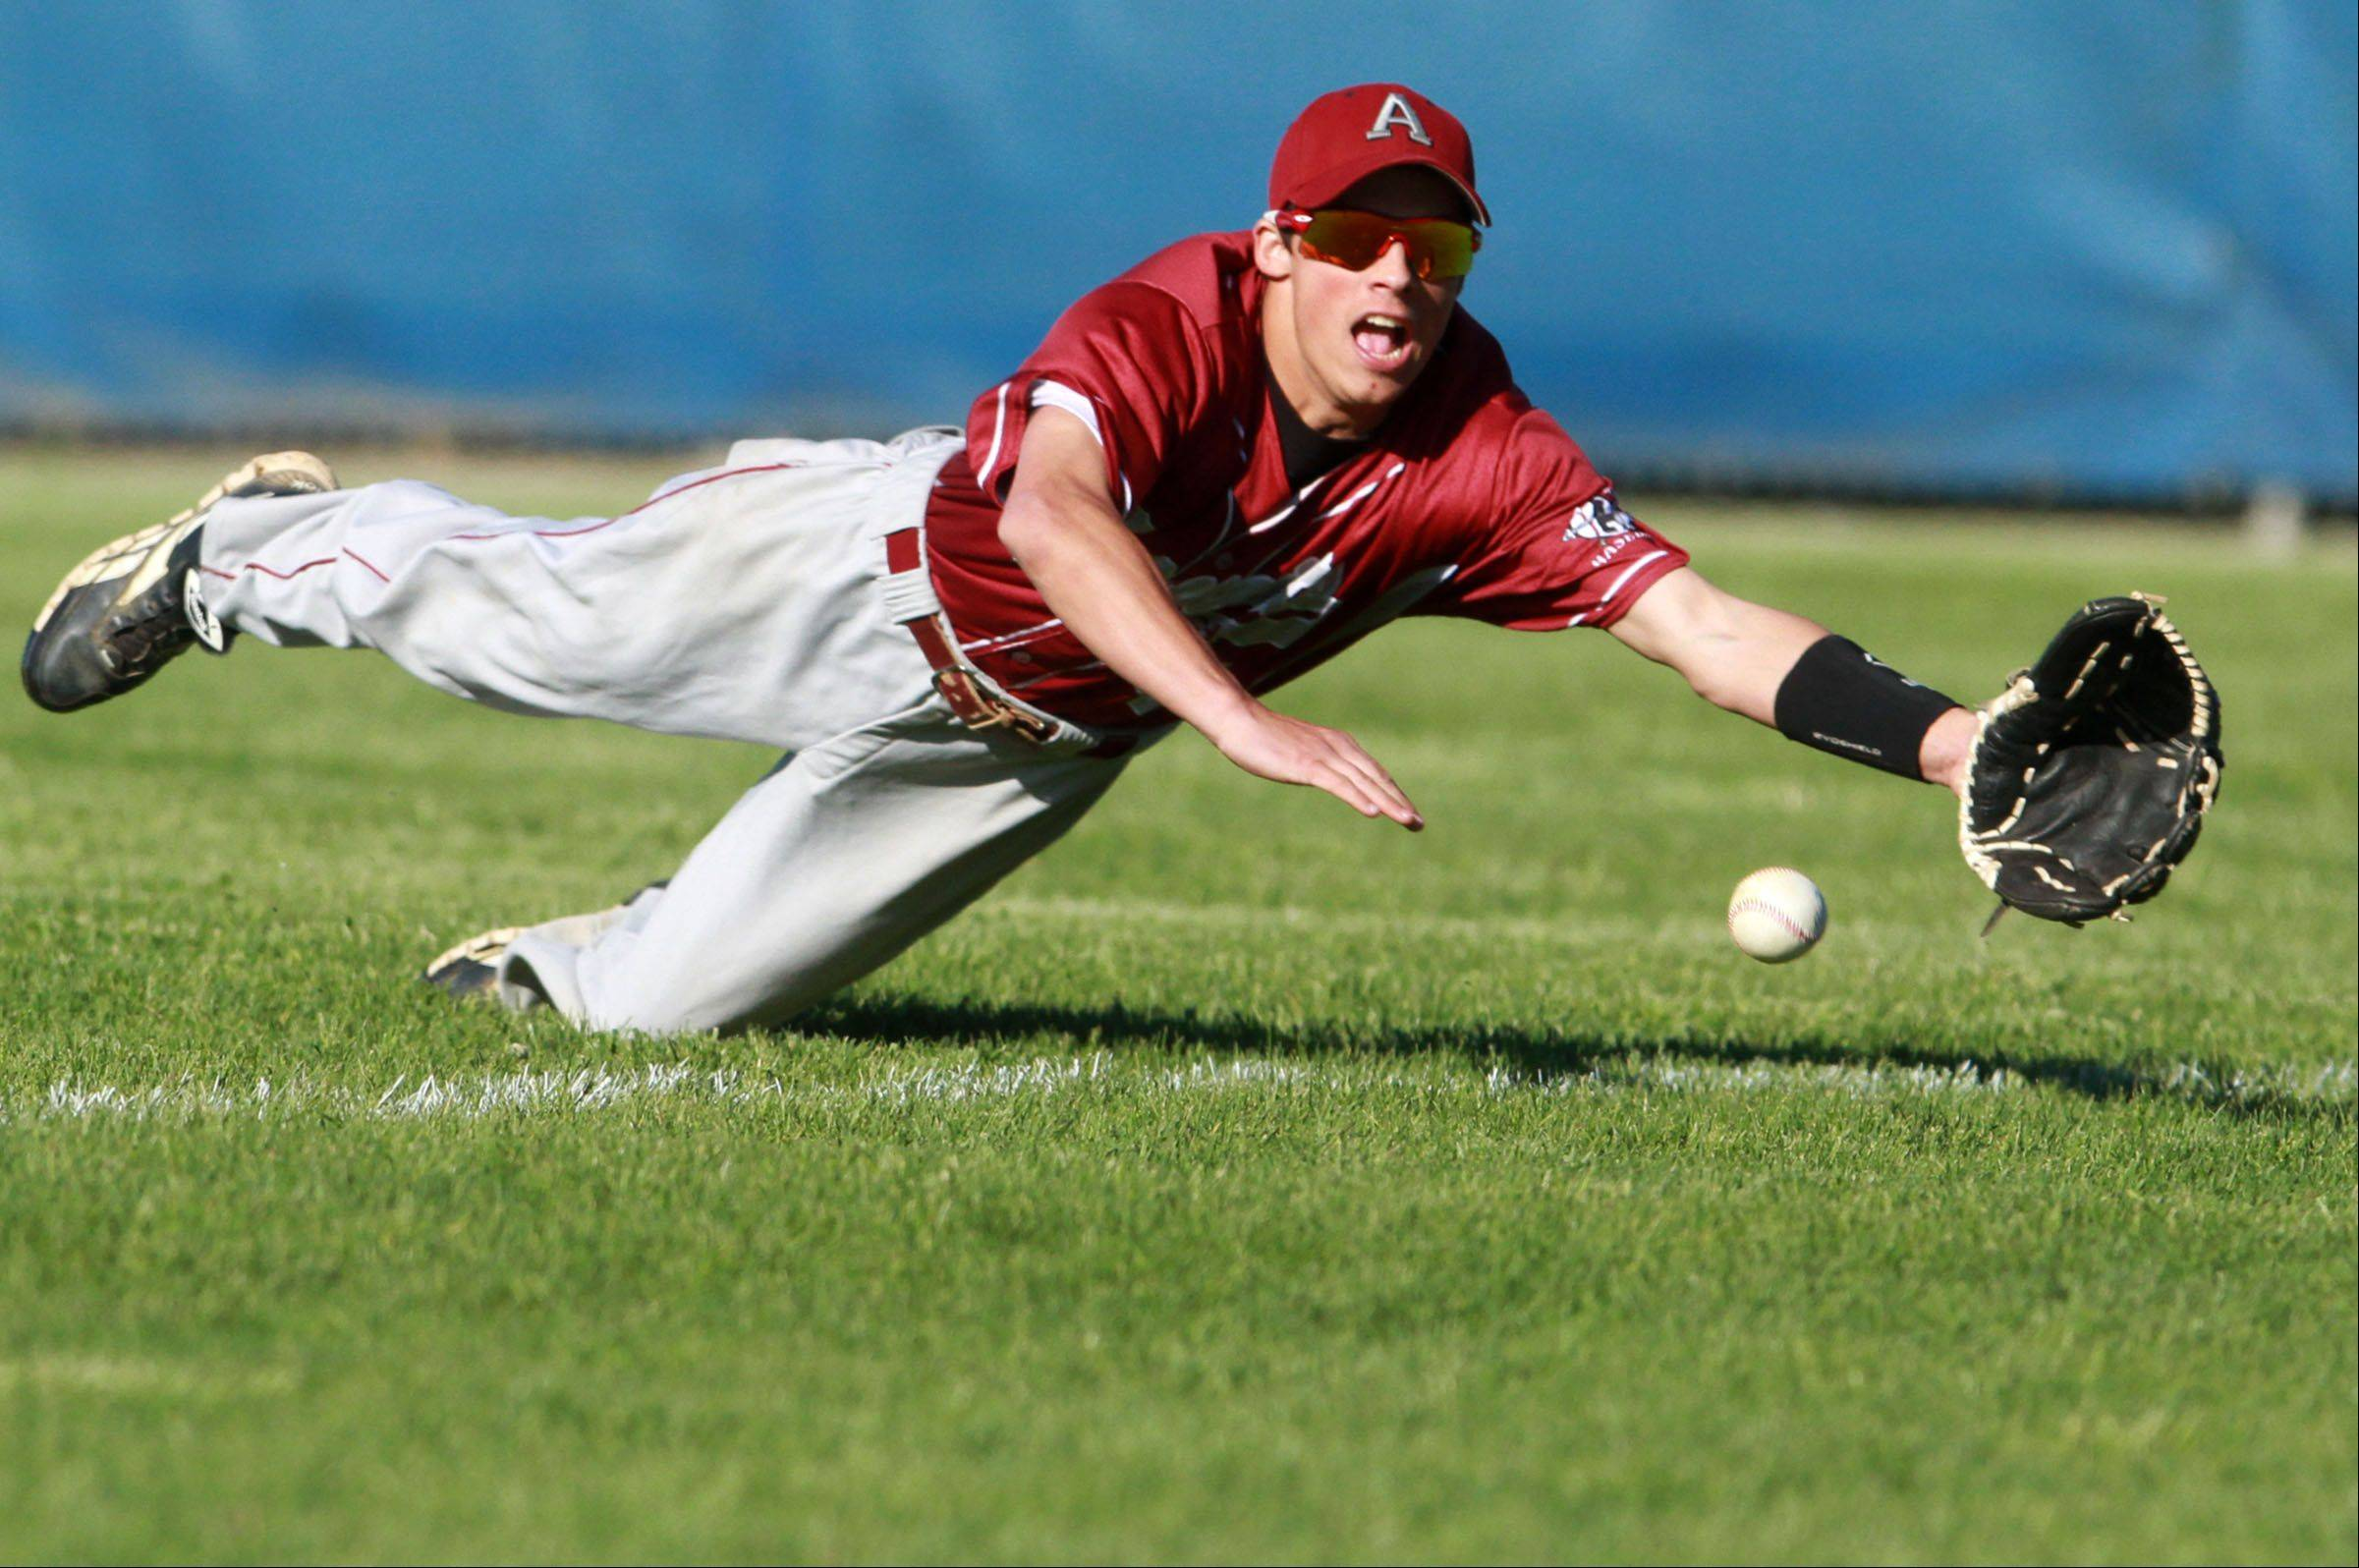 Antioch's Cameron Slate dives for a Lakes hit in right field during Class 3A regional semifinal play Friday at Lakes.